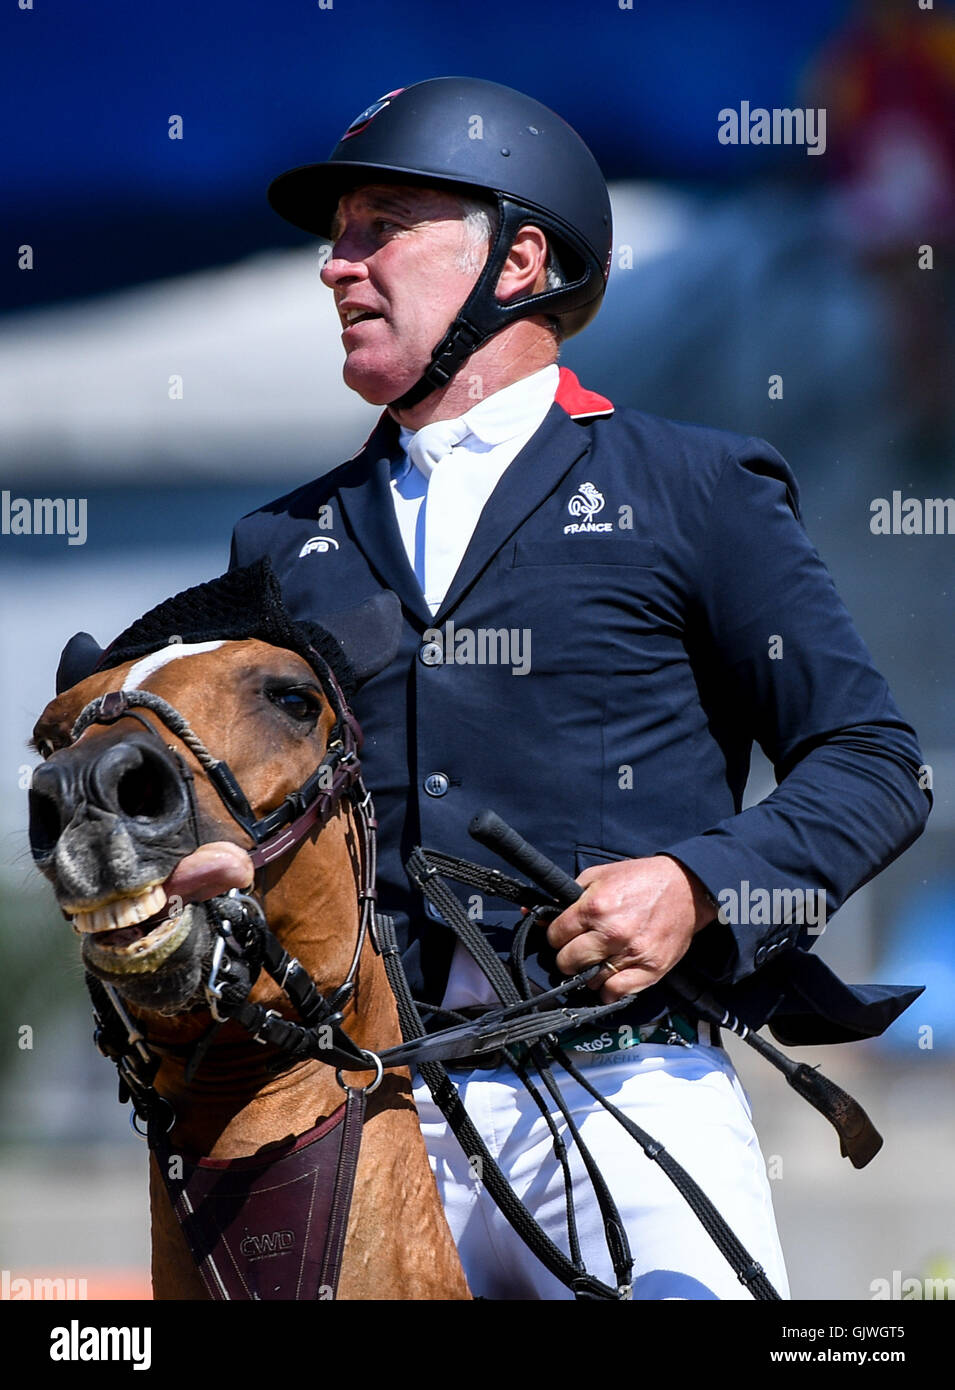 Rio De Janeiro, Brazil. 17th Aug, 2016. Roger Bost of France competes during the jumping team of equestrian at the - Stock Image